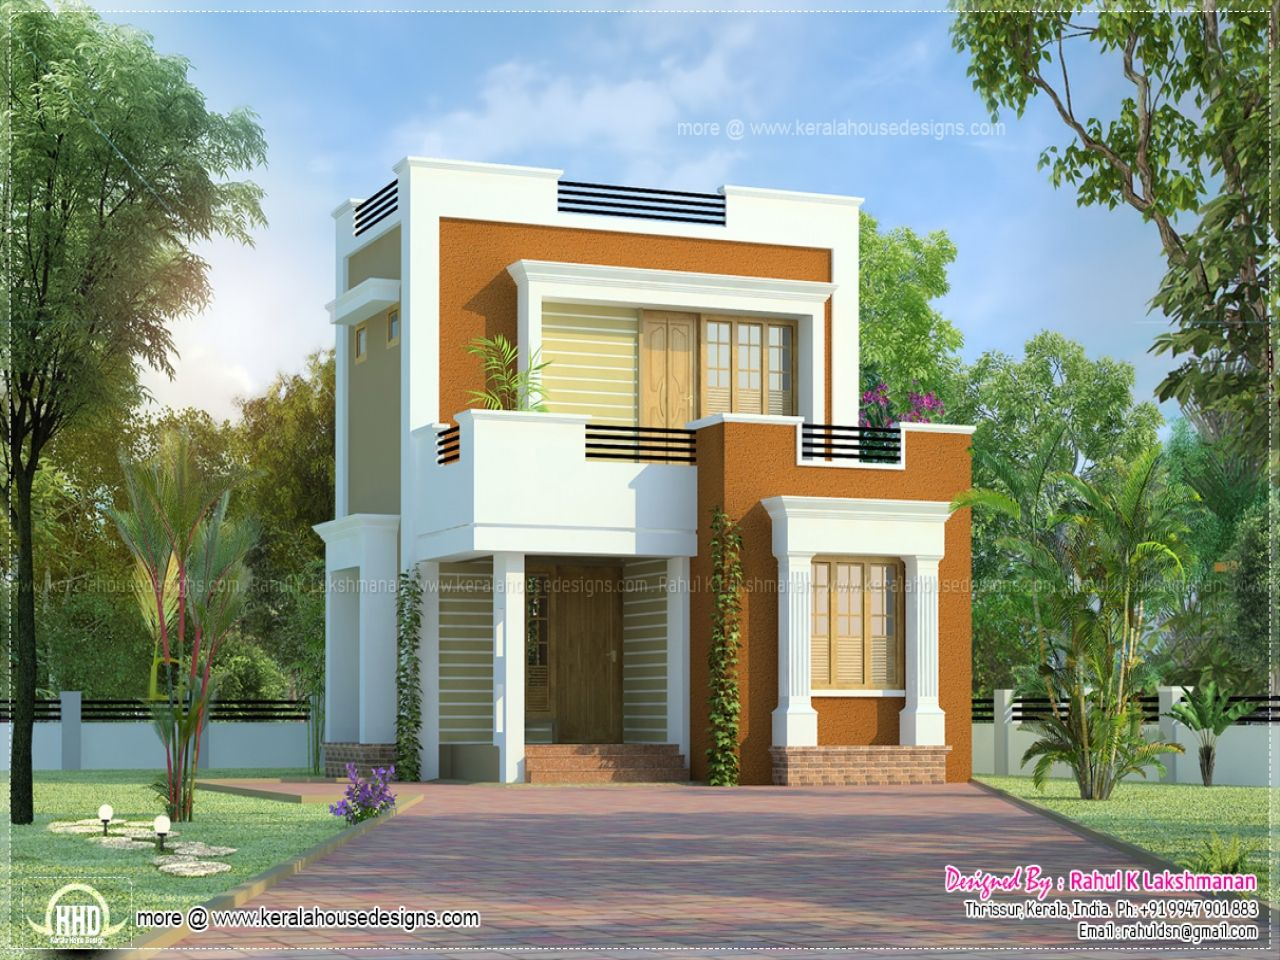 Small house design philippines cute small house designs for Cute house plans